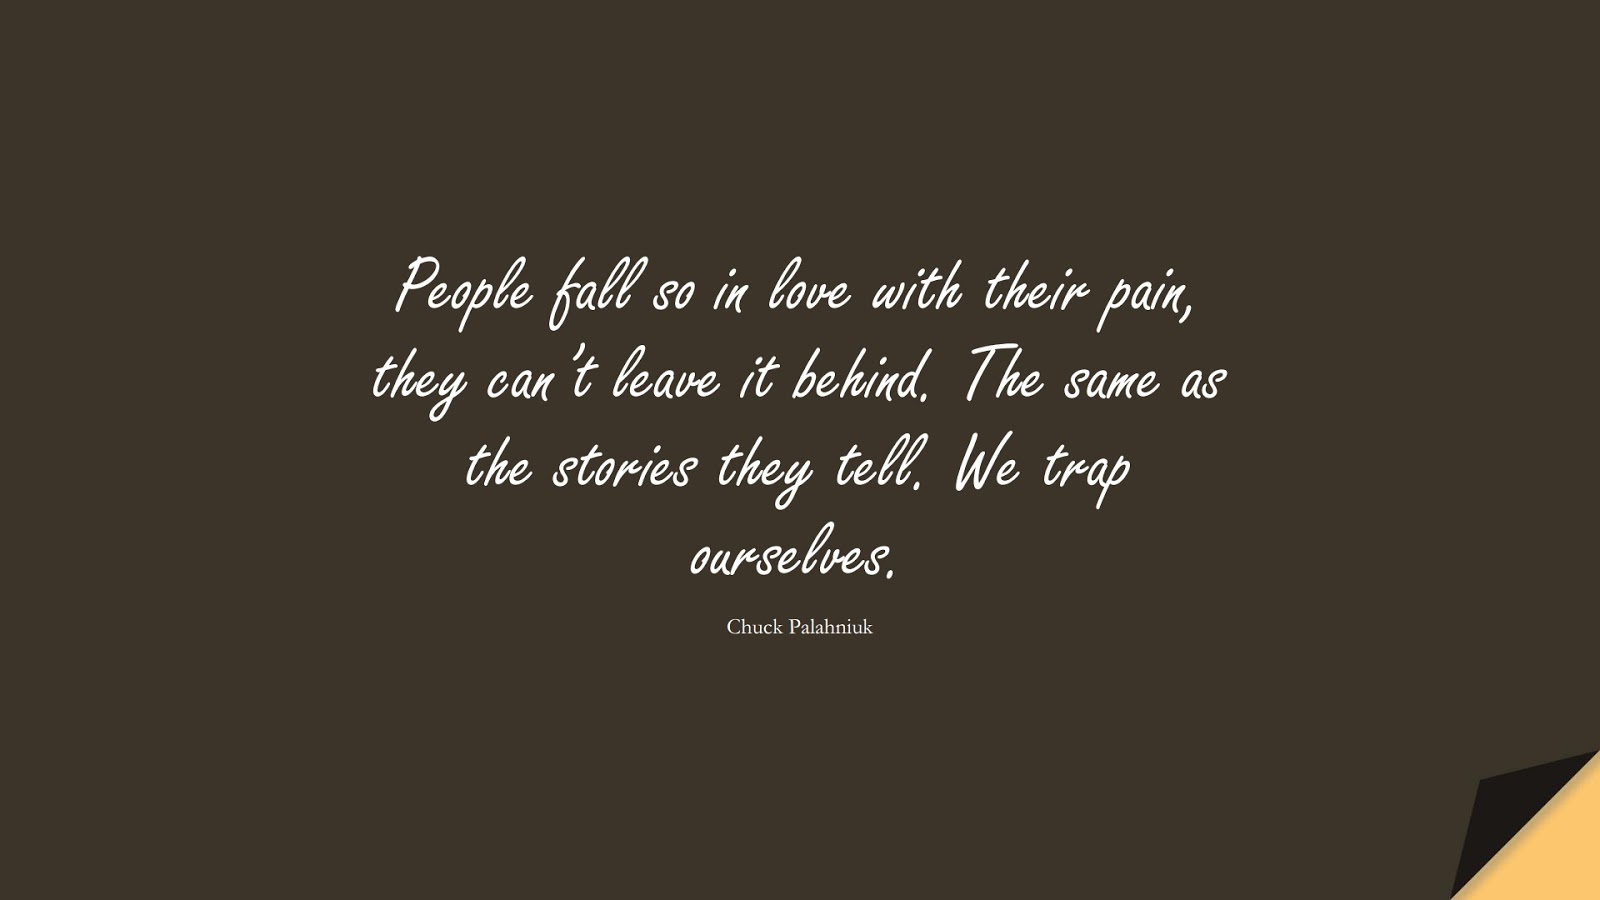 People fall so in love with their pain, they can't leave it behind. The same as the stories they tell. We trap ourselves. (Chuck Palahniuk);  #DepressionQuotes